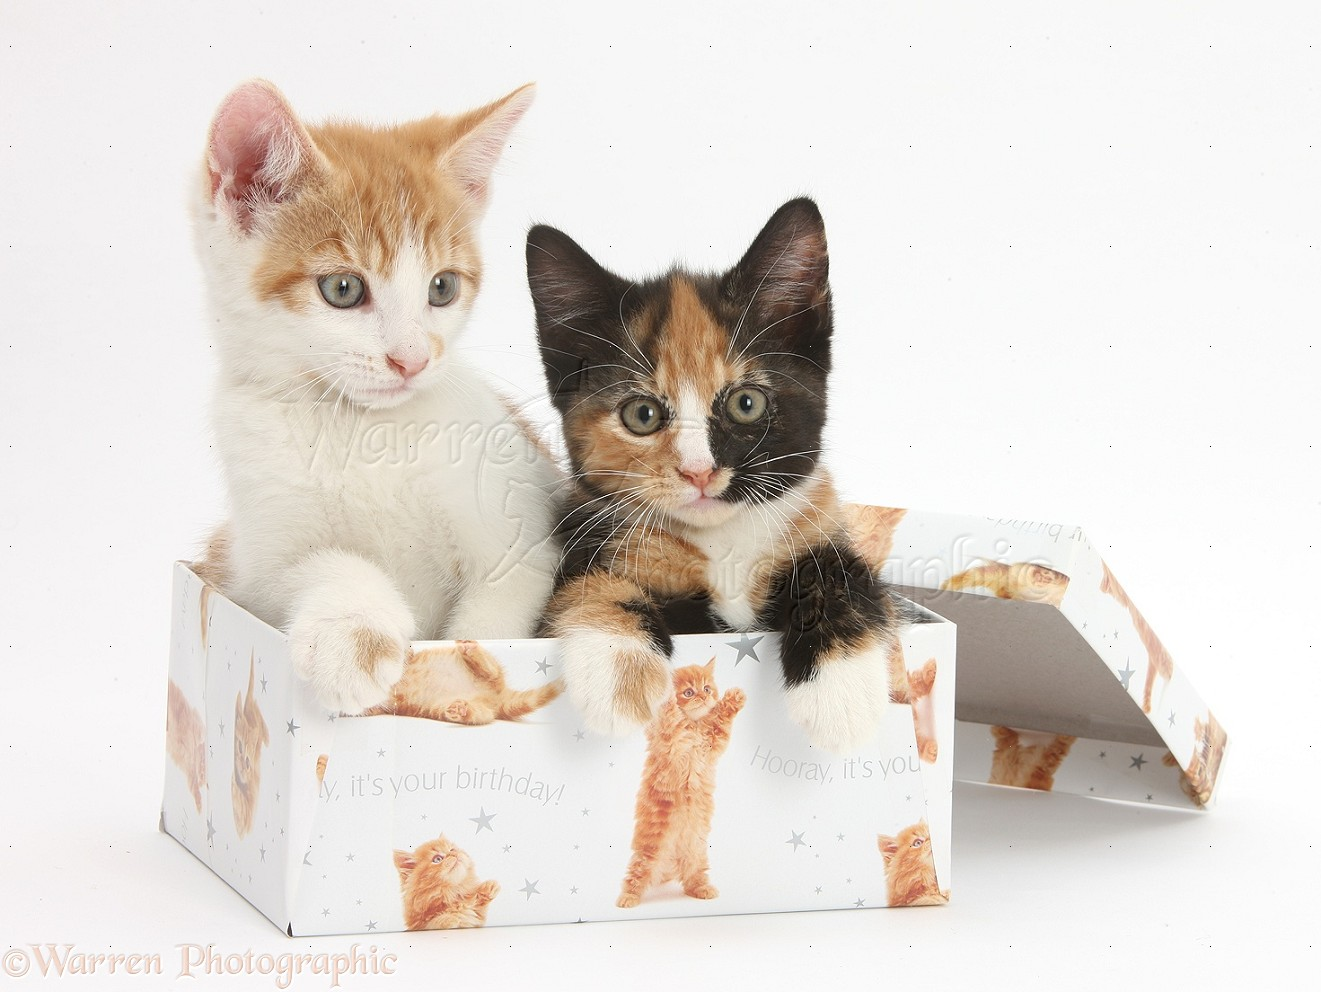 Birthday Kittens Images Kittens in a Birthday Box